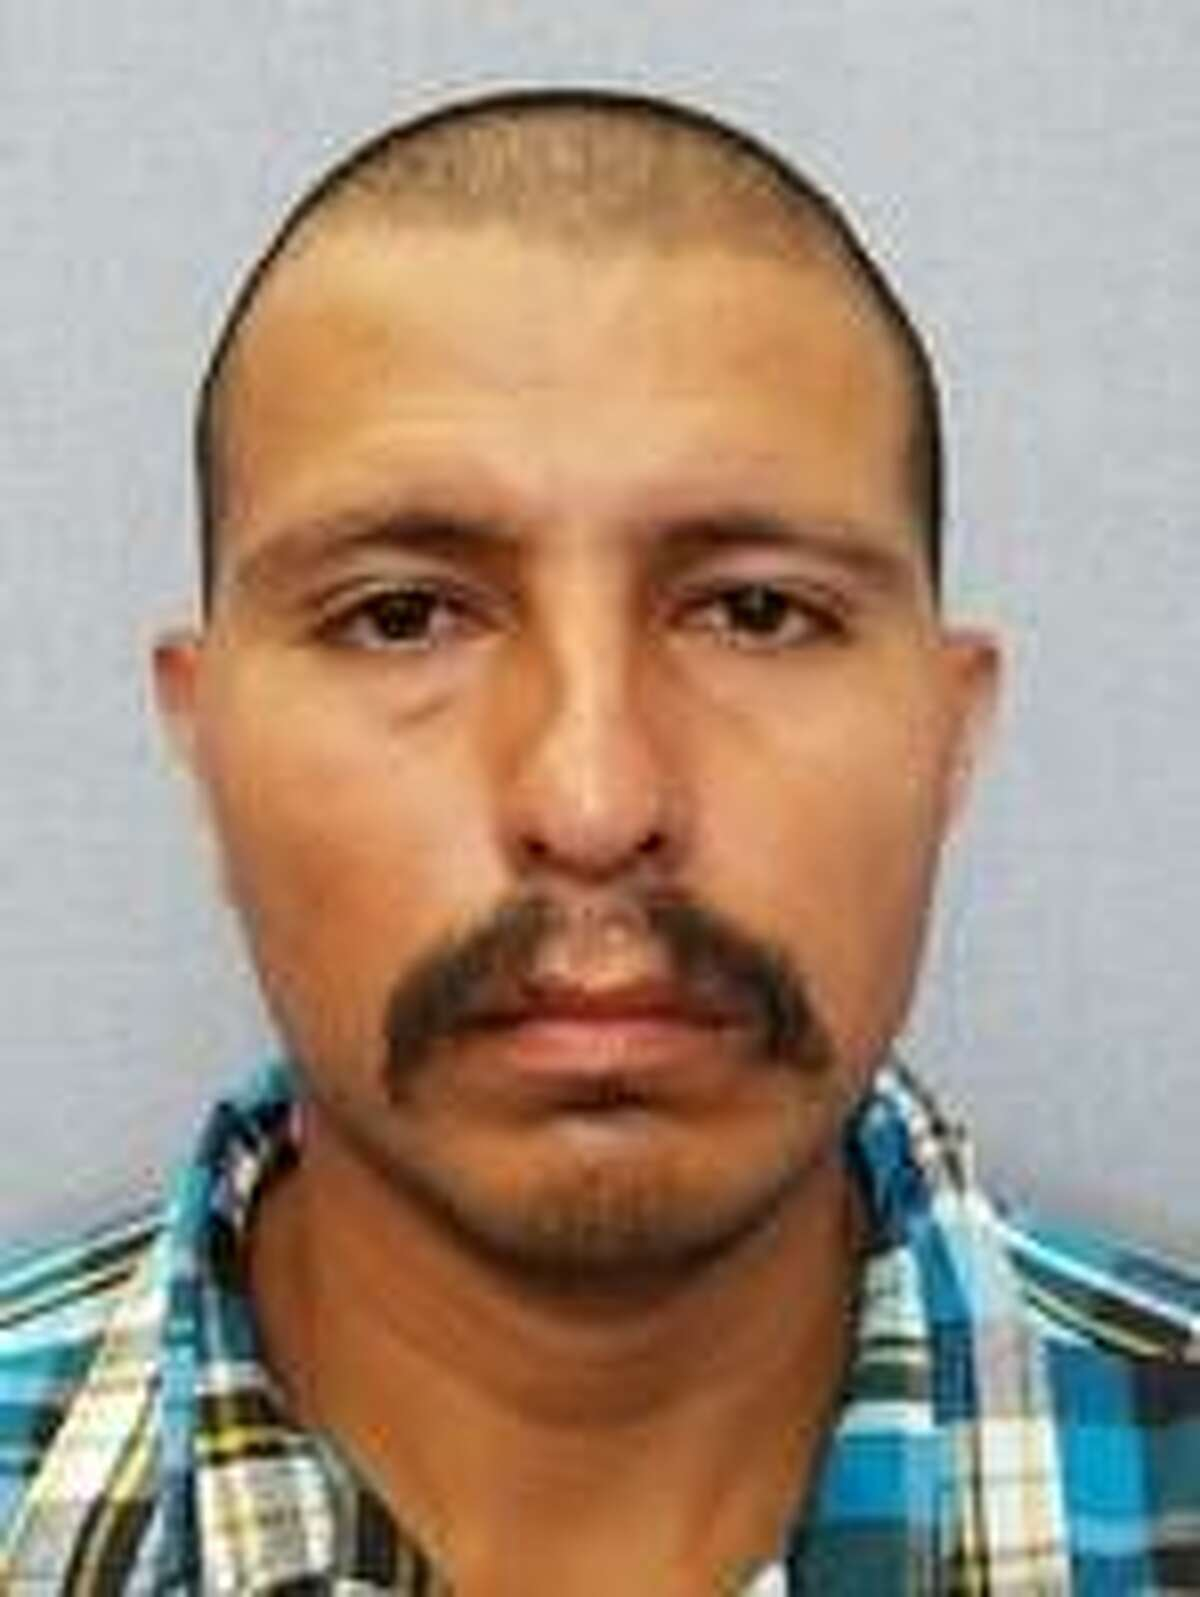 Rick Rangel, age 33, was arrested March 5, 2021, for allegedly failing to comply as a sex offender.